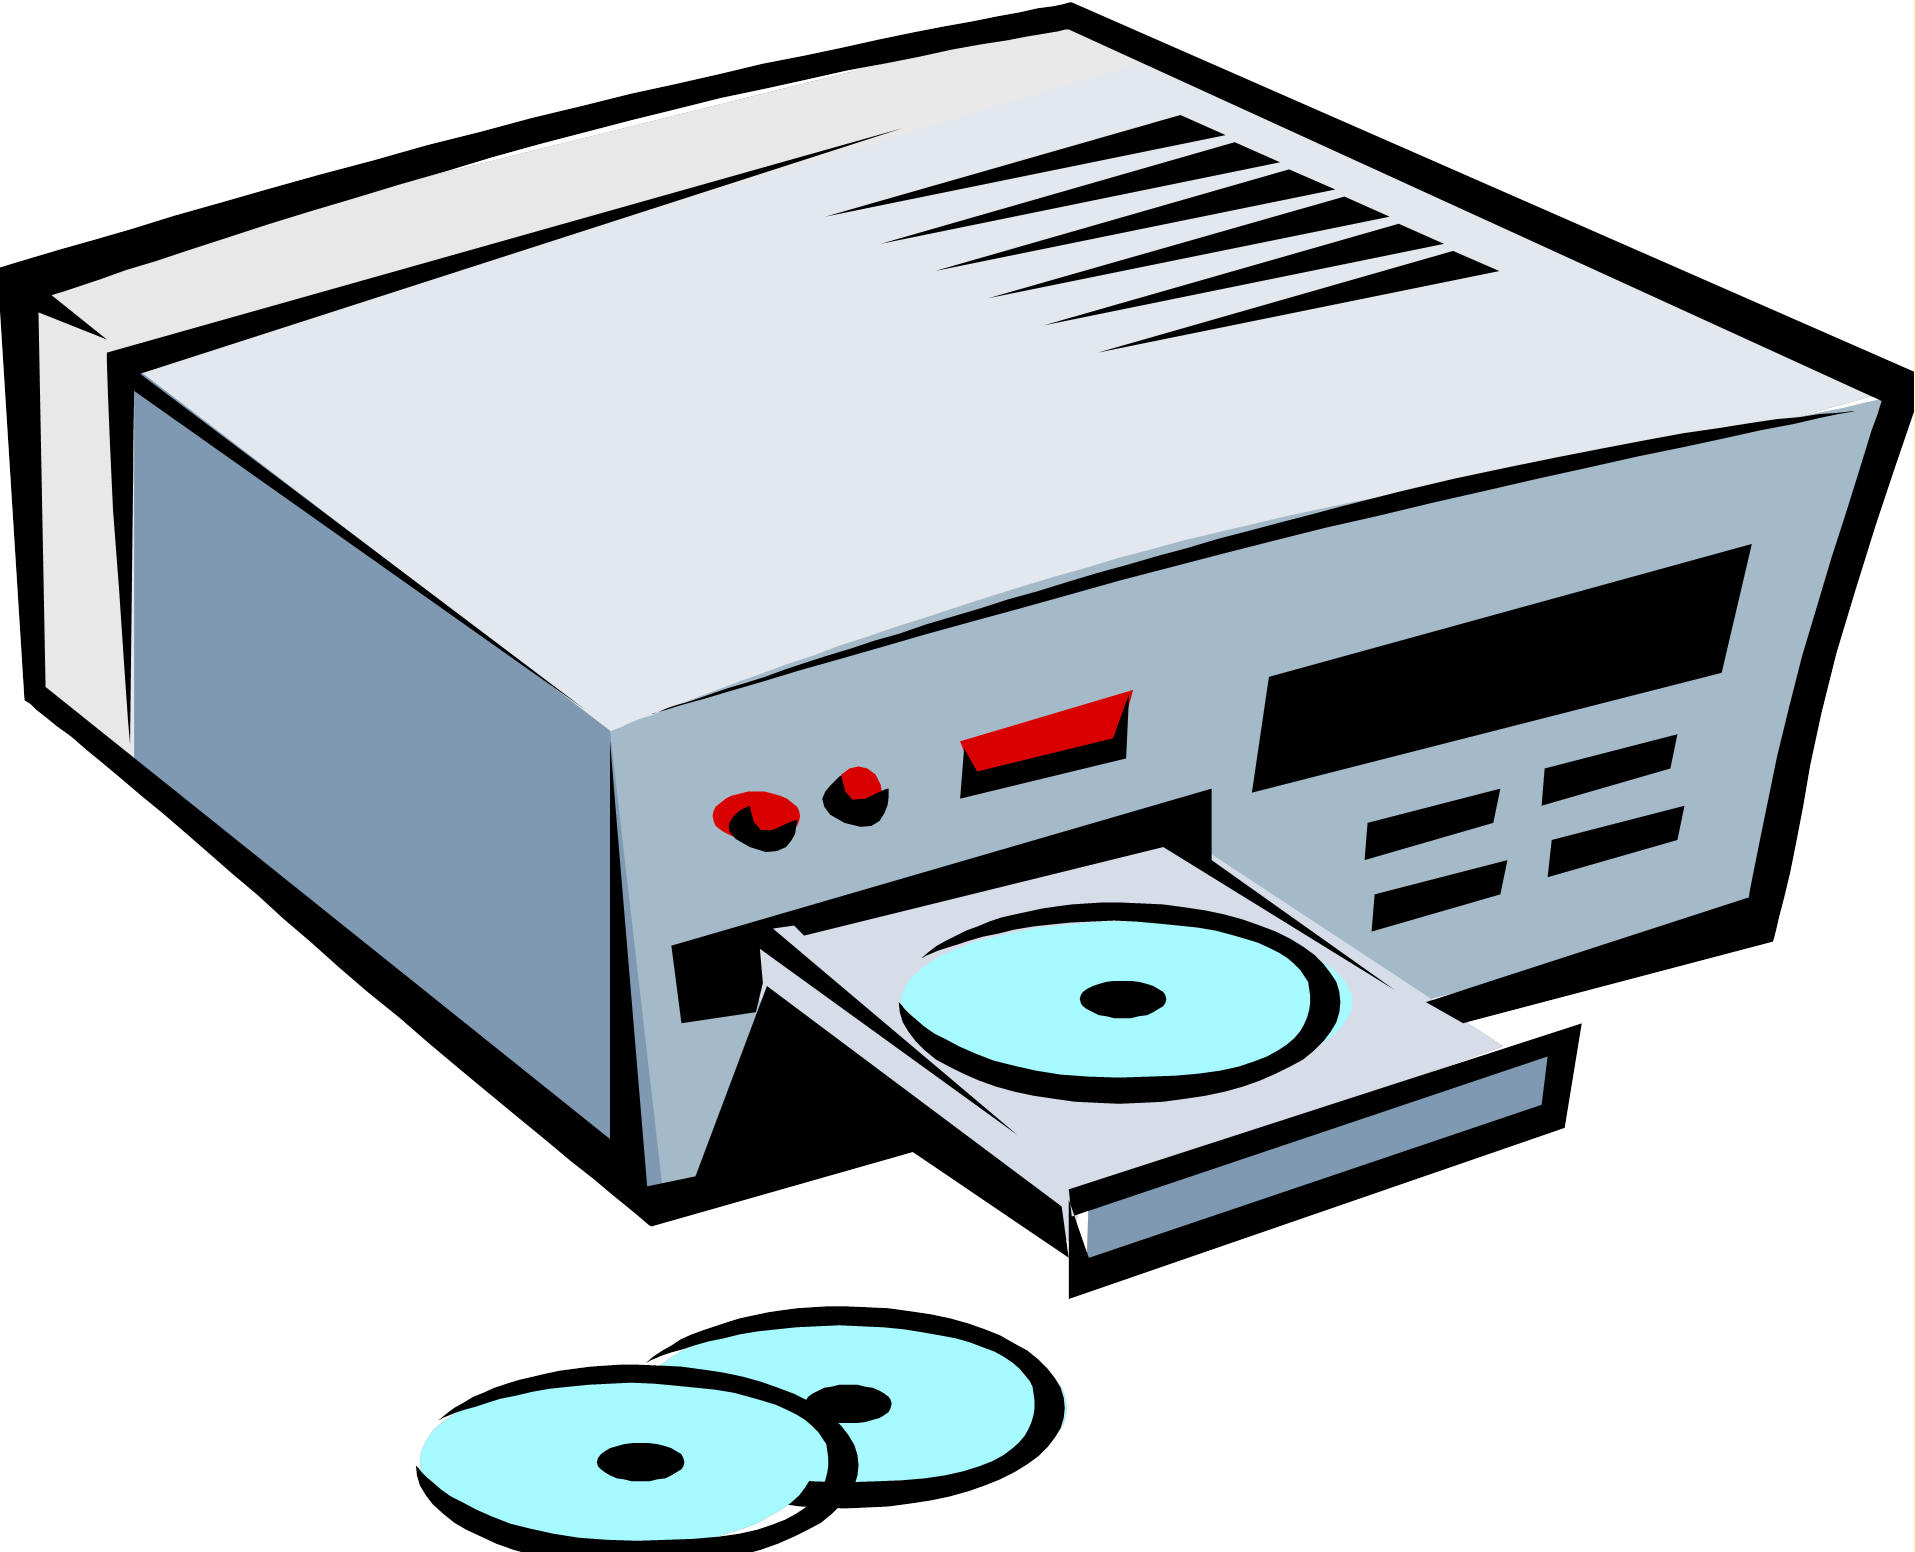 Dvd player clipart free download on png.